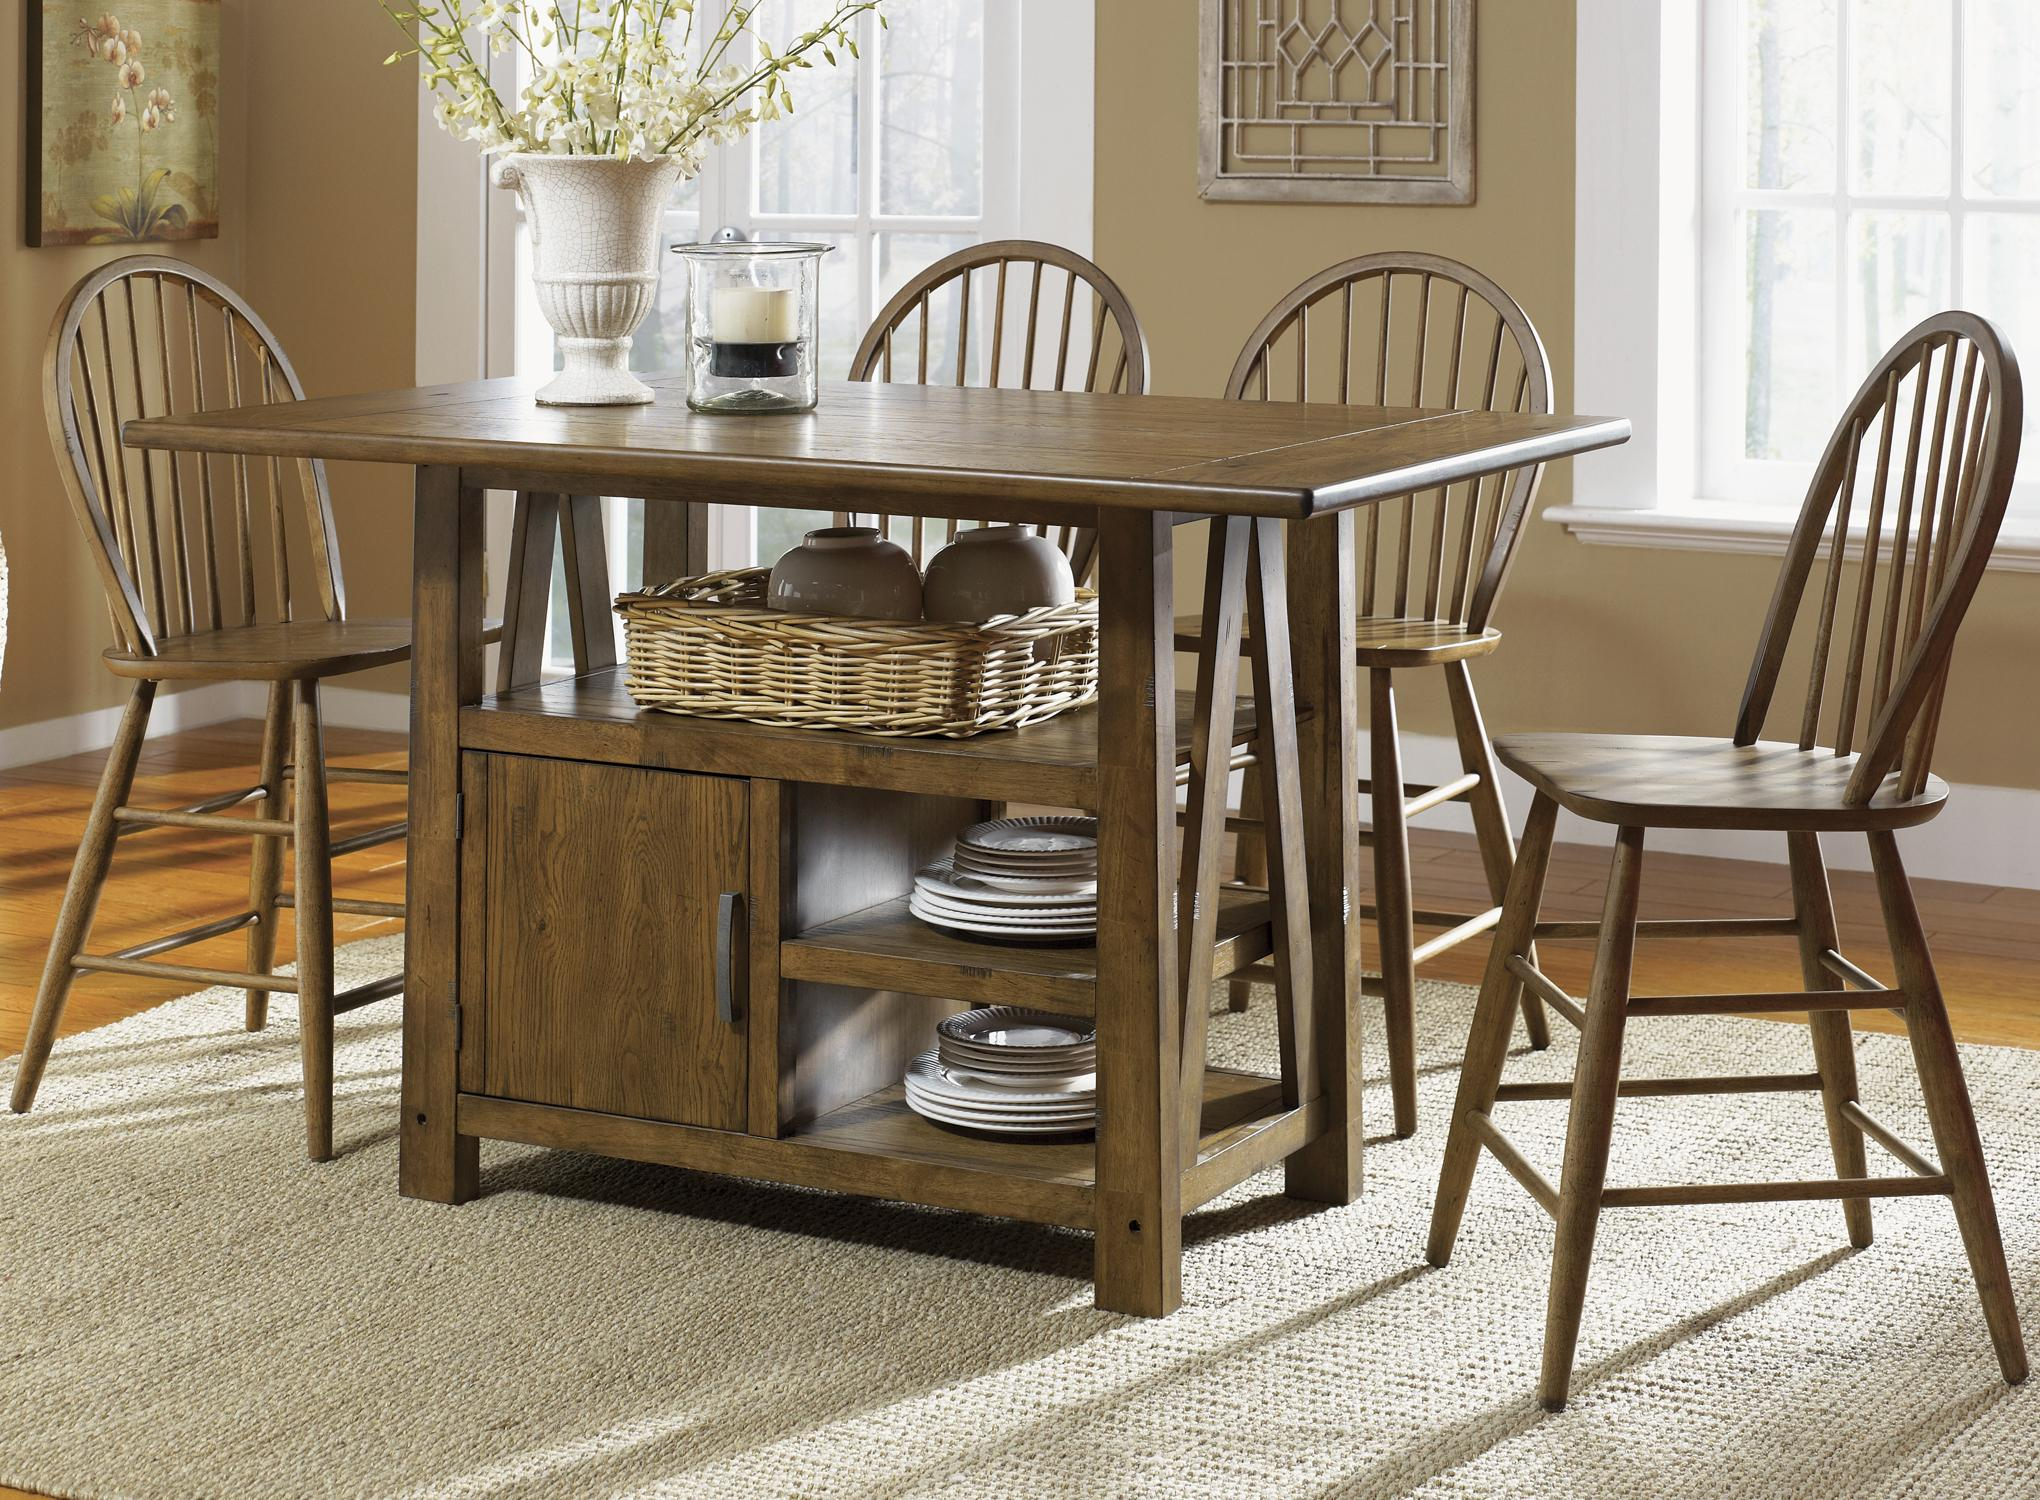 farmhouse table and chairs with bench ikea chair covers ebay delivery estimates northeast factory direct cleveland eastlake 5 piece pub set